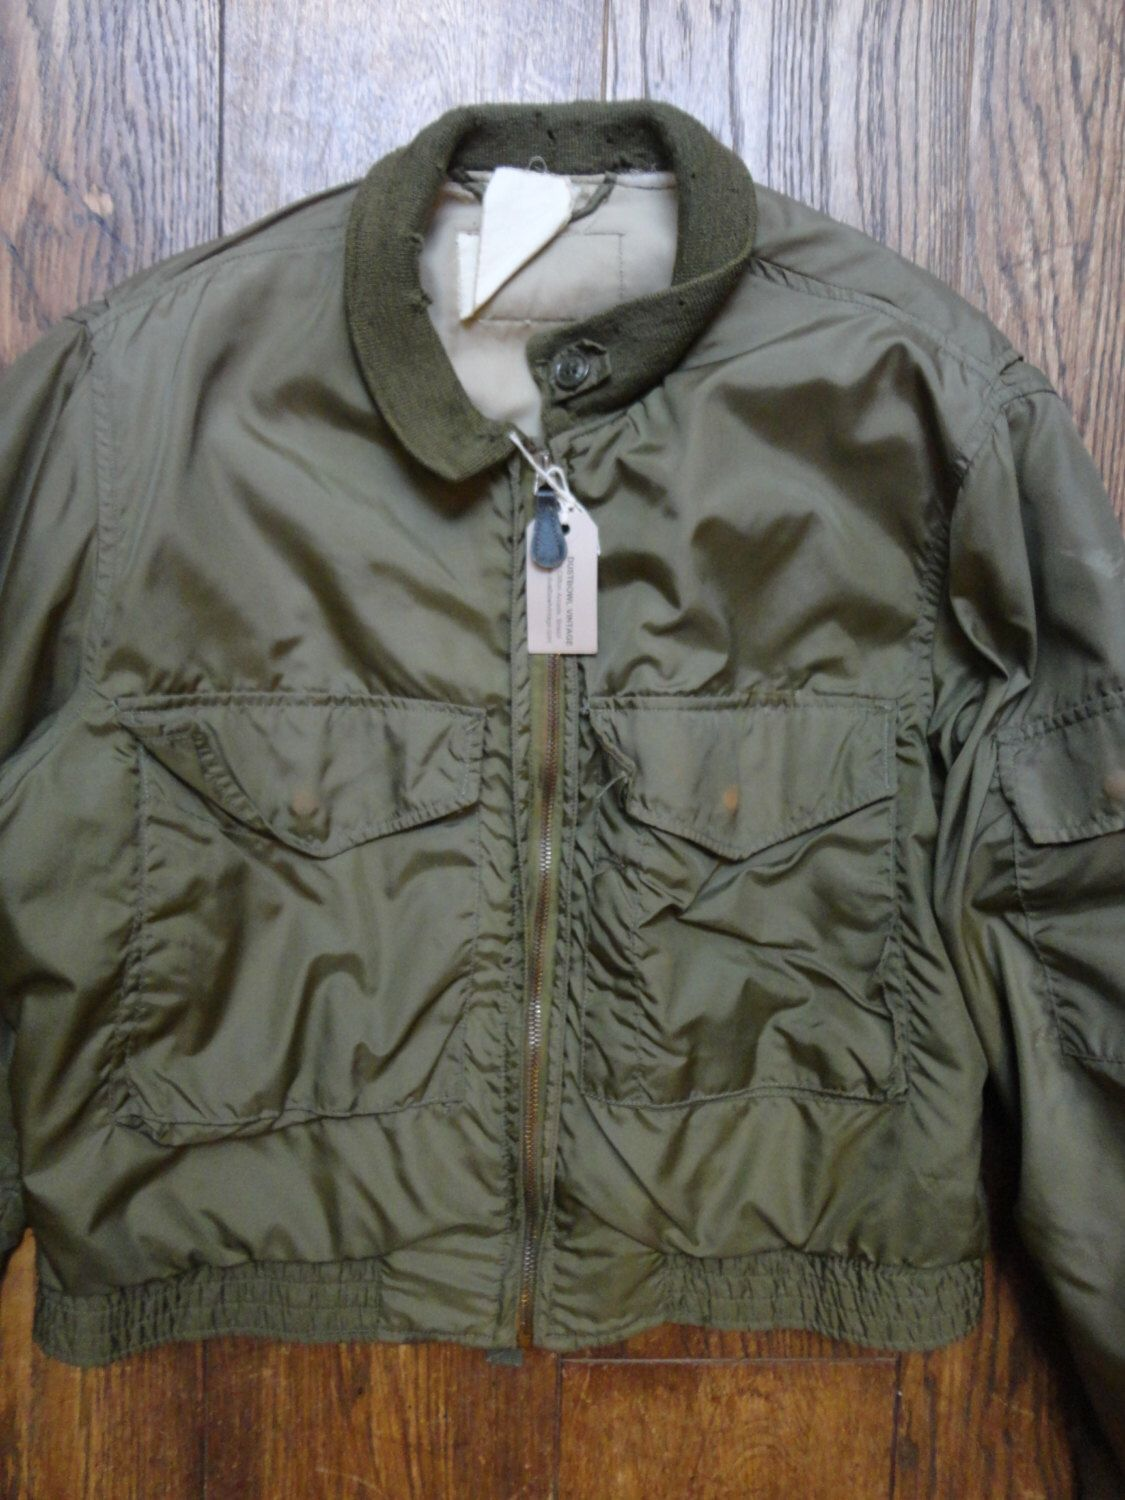 Vintage 1950s 50s USN US Navy Type G-8 G8 WEP flight jacket suit ...